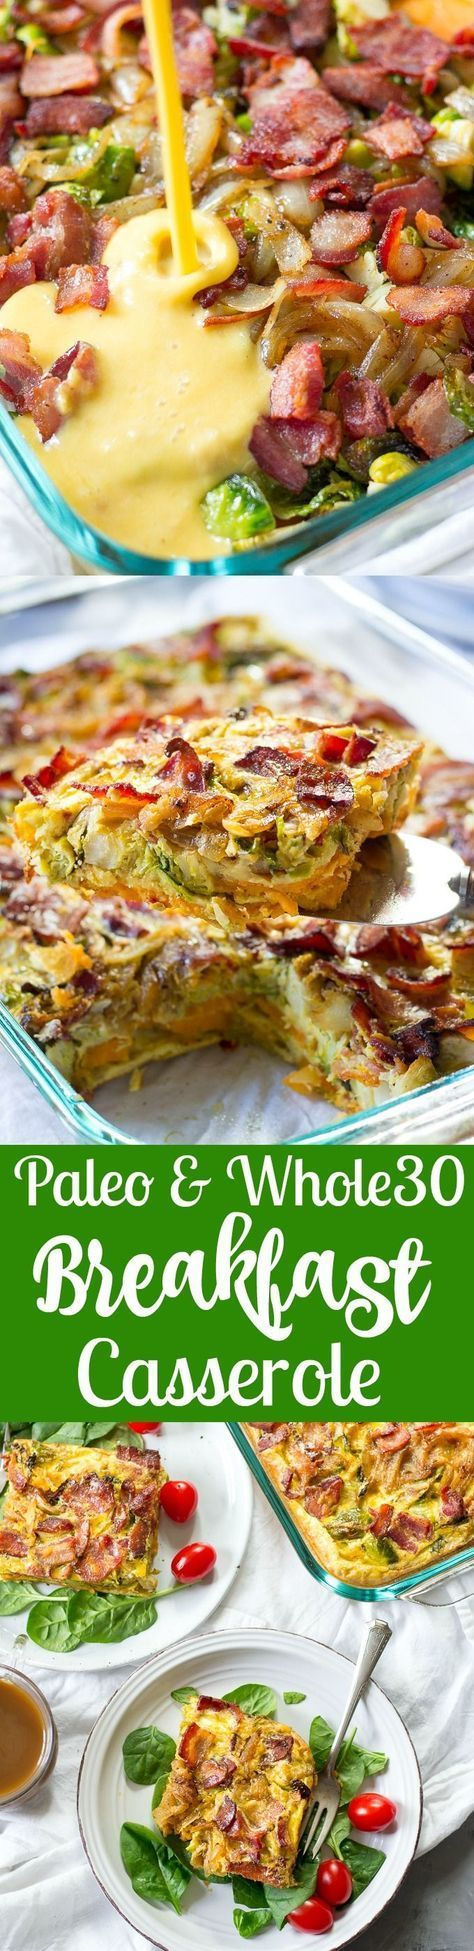 A paleo and whole30 breakfast casserole with layers of roasted sweet potatoes, brussels sprouts, caramelized onions, and crispy bacon. Great to make ahead of time, freeze or serve for brunch for a crowd! (winter food for a crowd)